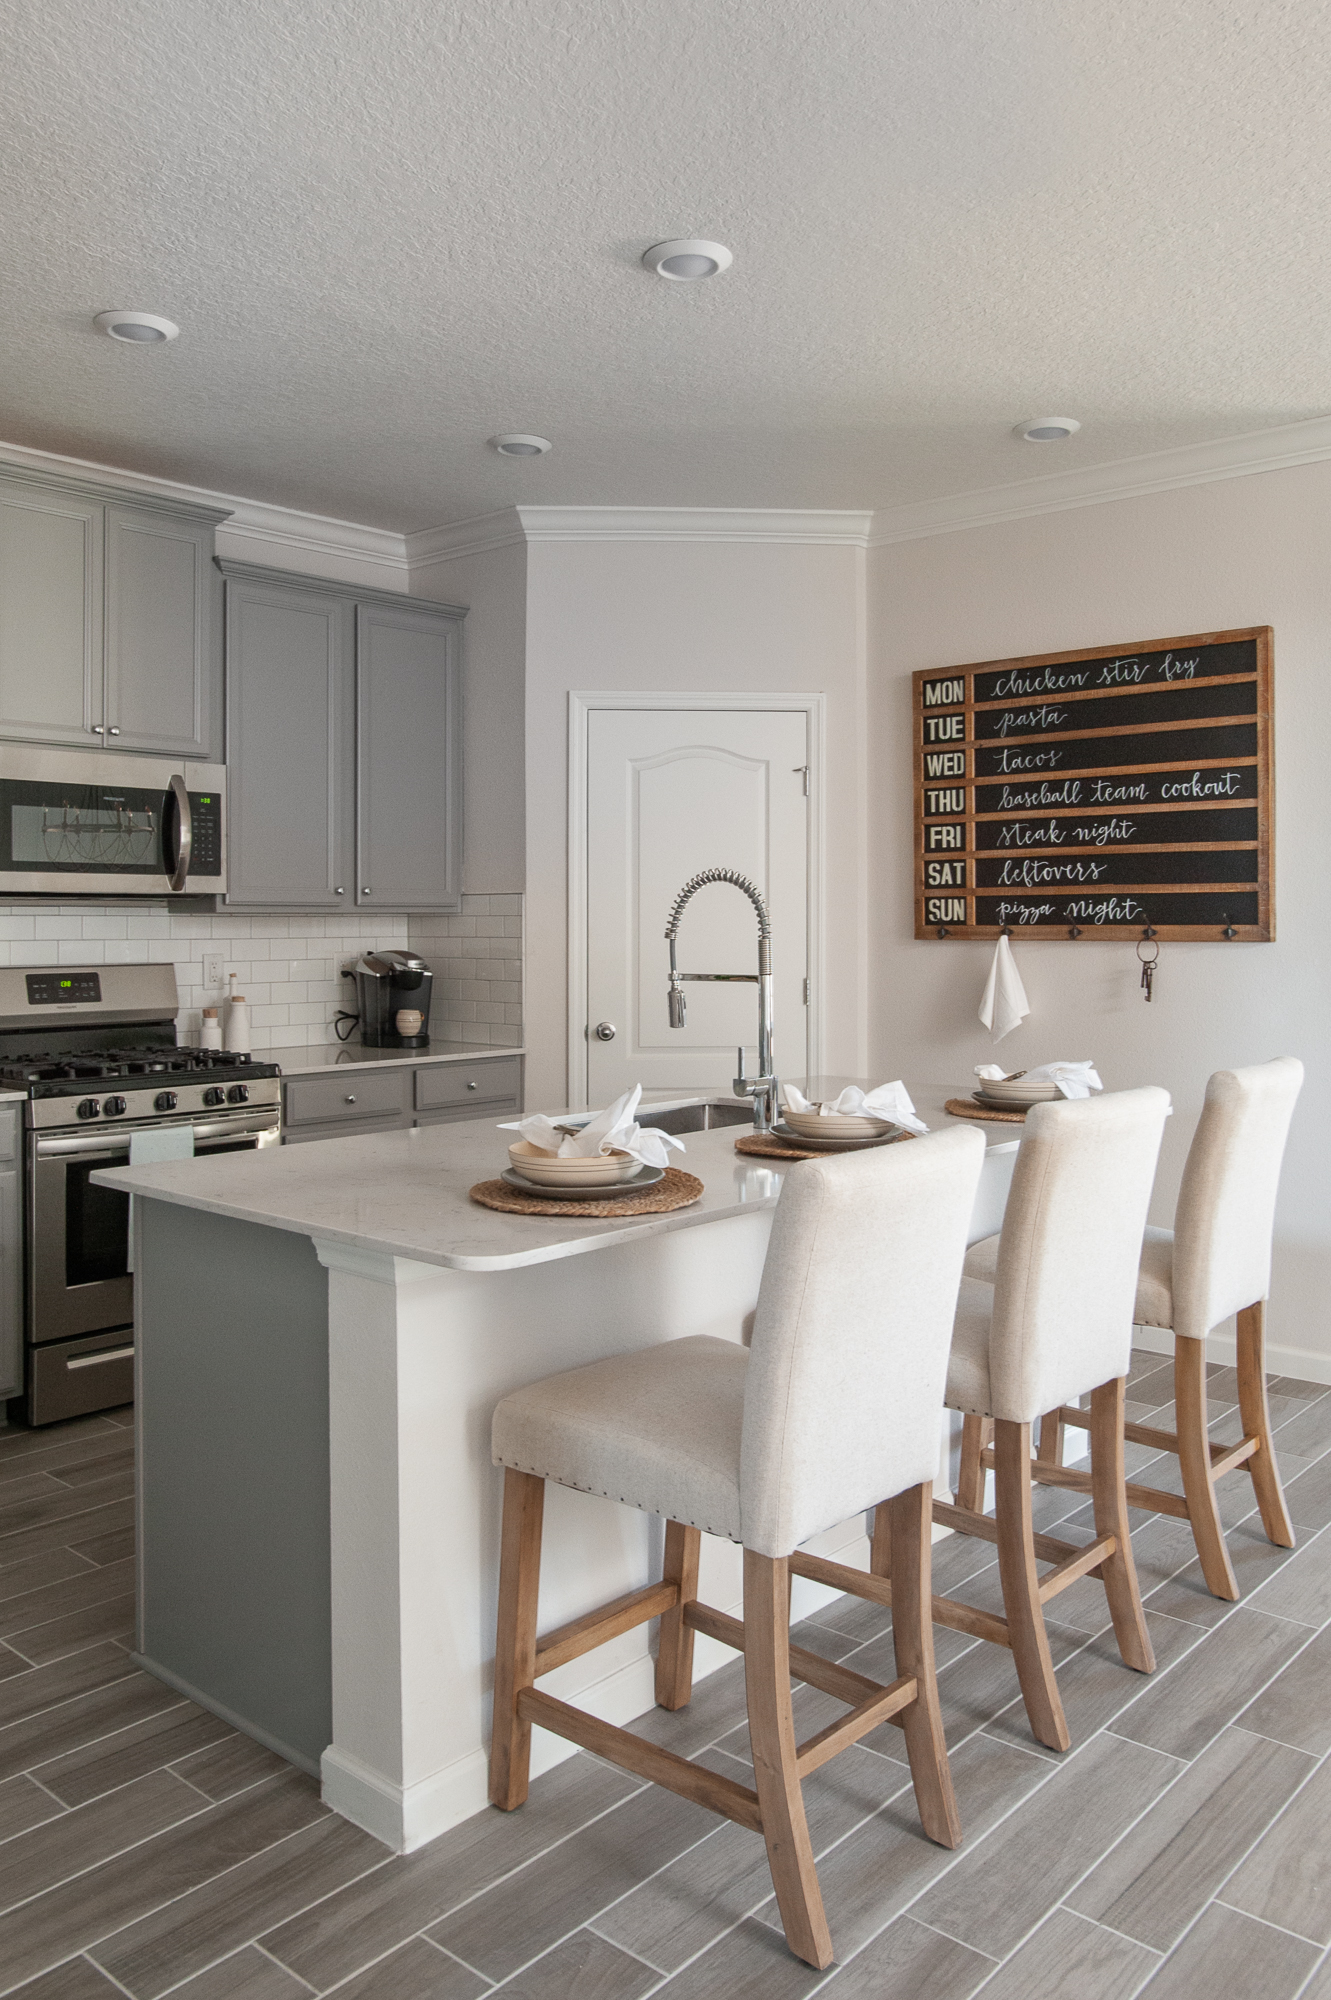 Micamy_Interior Designer_Design_Interior_Model_Merchandising_Kitchen_Grey_Cabinets_Forty West_Lennar_Place Setting_SubwayTile_Farmhouse_Faucet.jpg